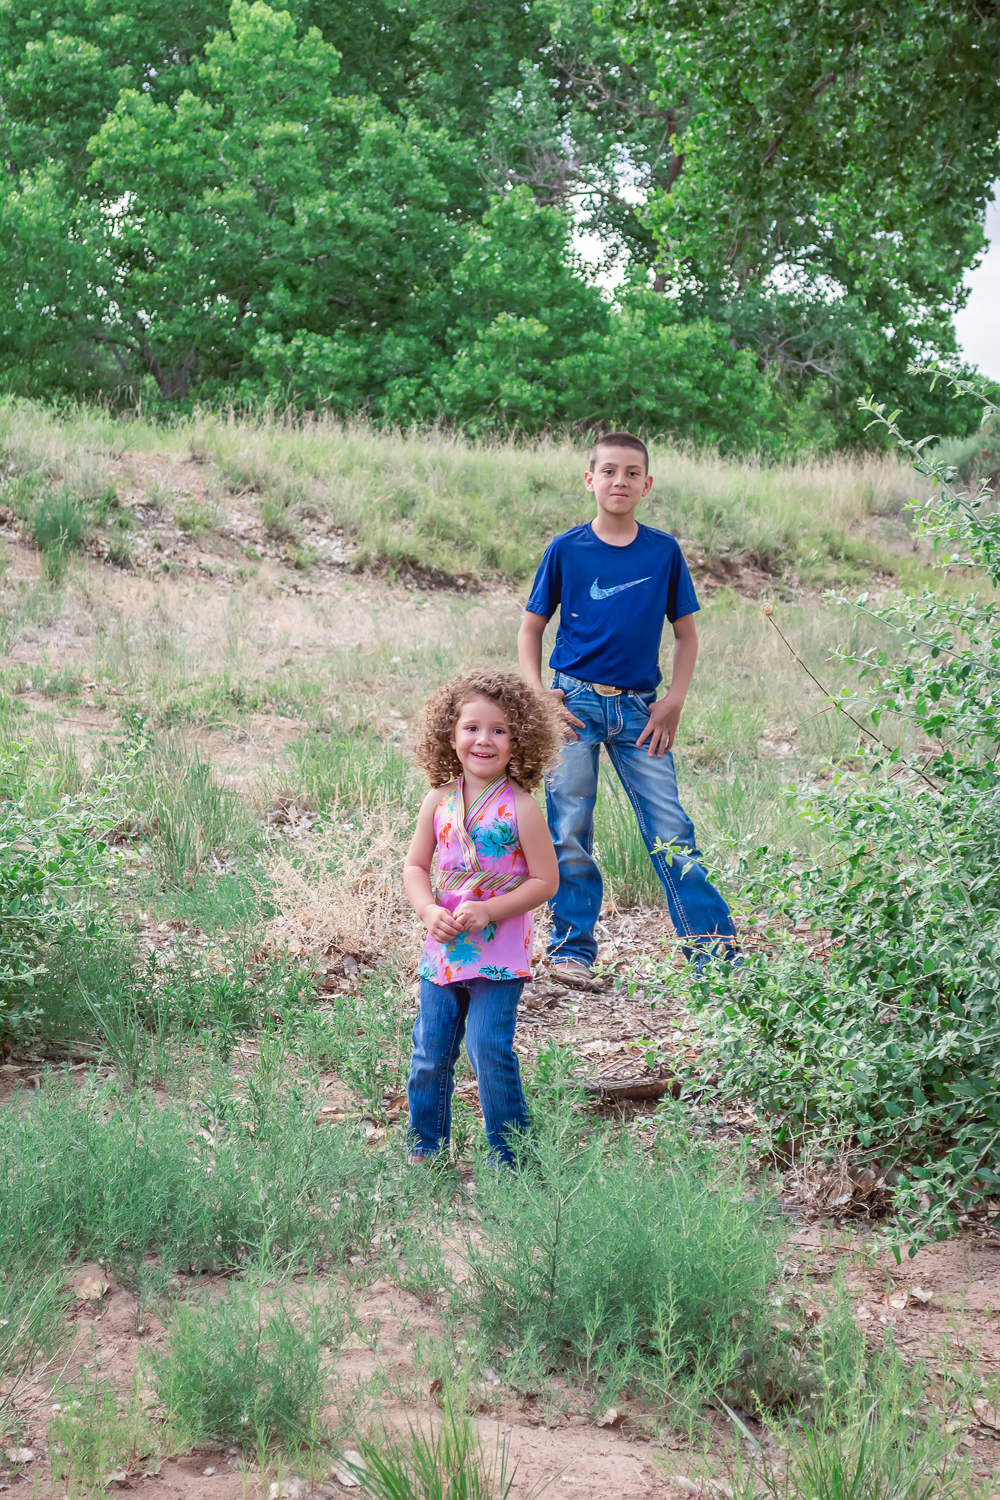 Childhood Portraits, Family Photos, Outdoor Photos, Outdoor Portrait Session, Fall Family Photos, Rio Rancho Portrait Photographer